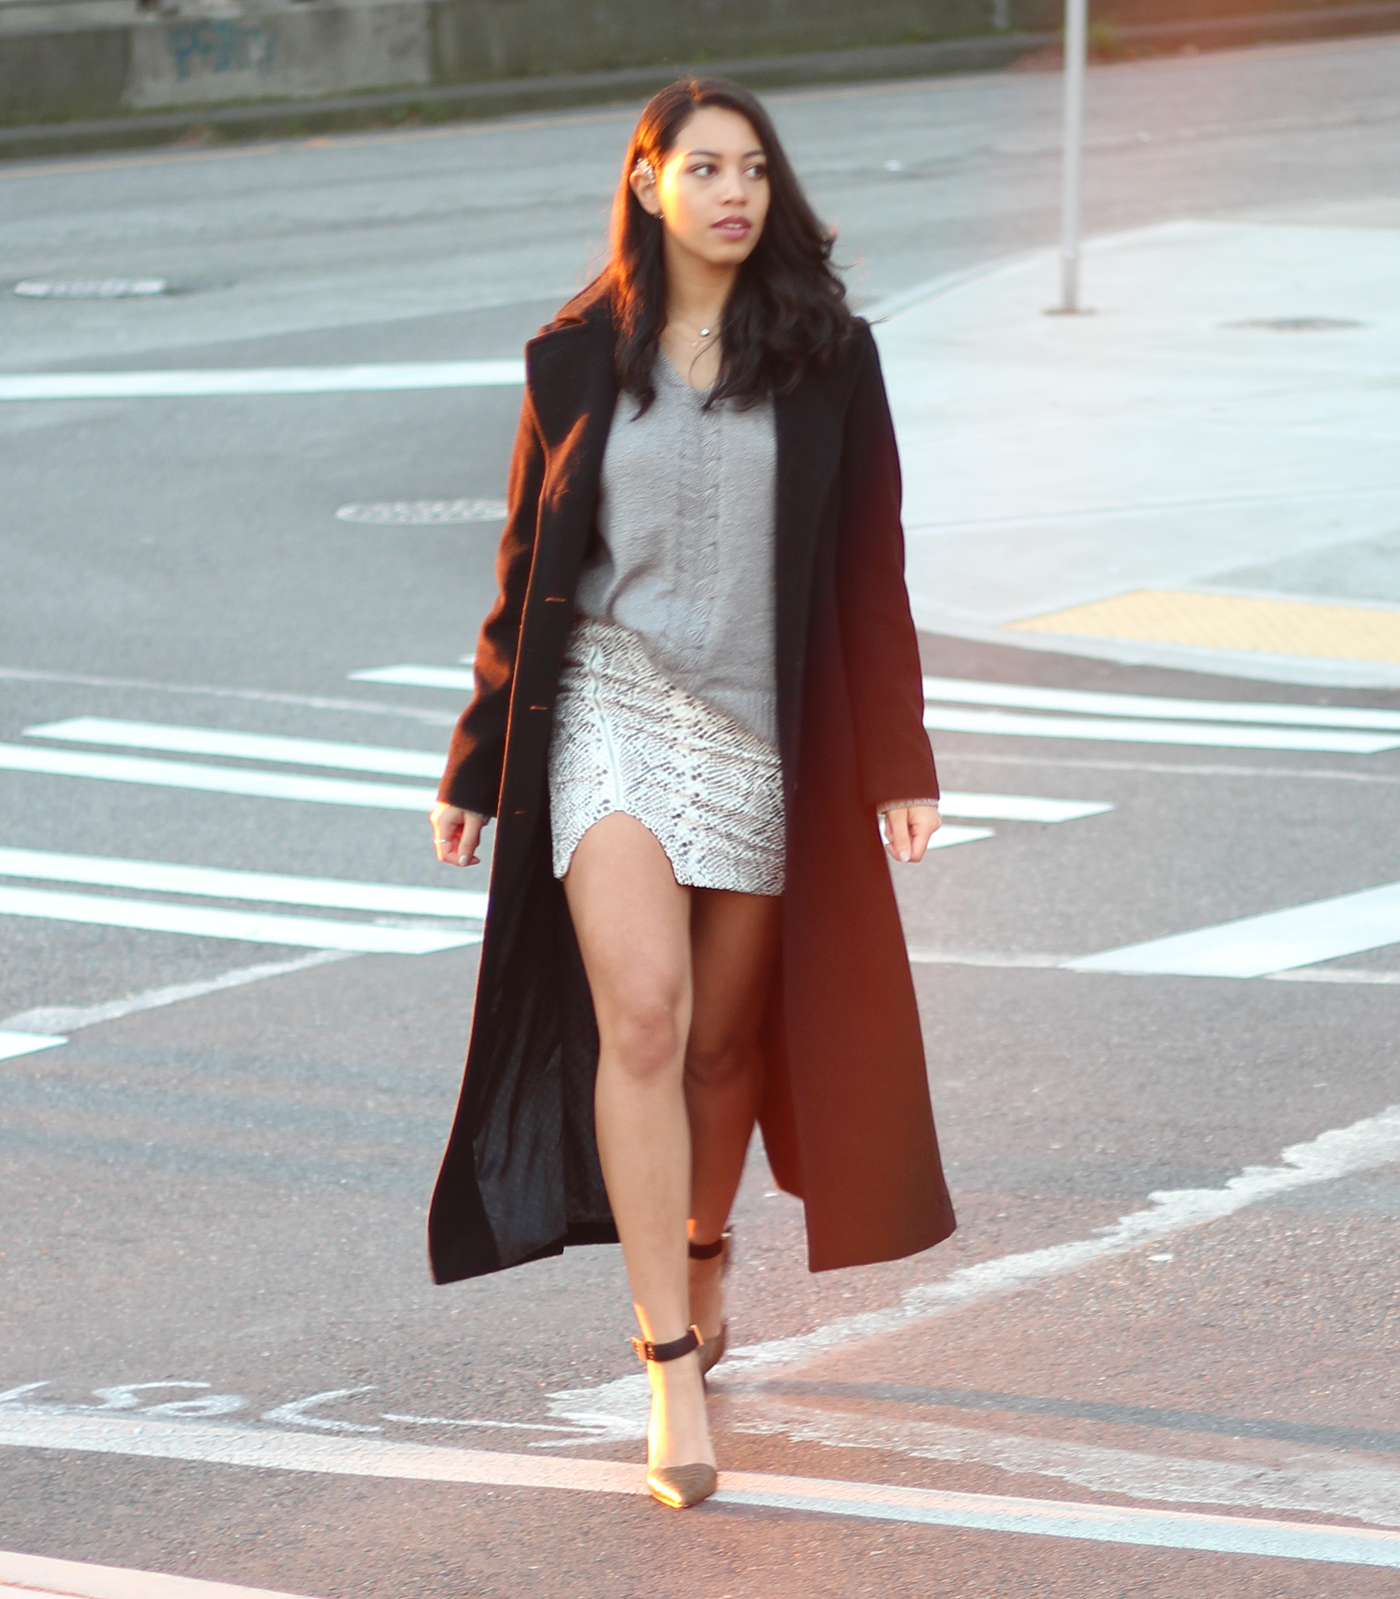 short skirt, long jacket | PRETTYSLICKCHICK.COM | Pinterest | Long ...